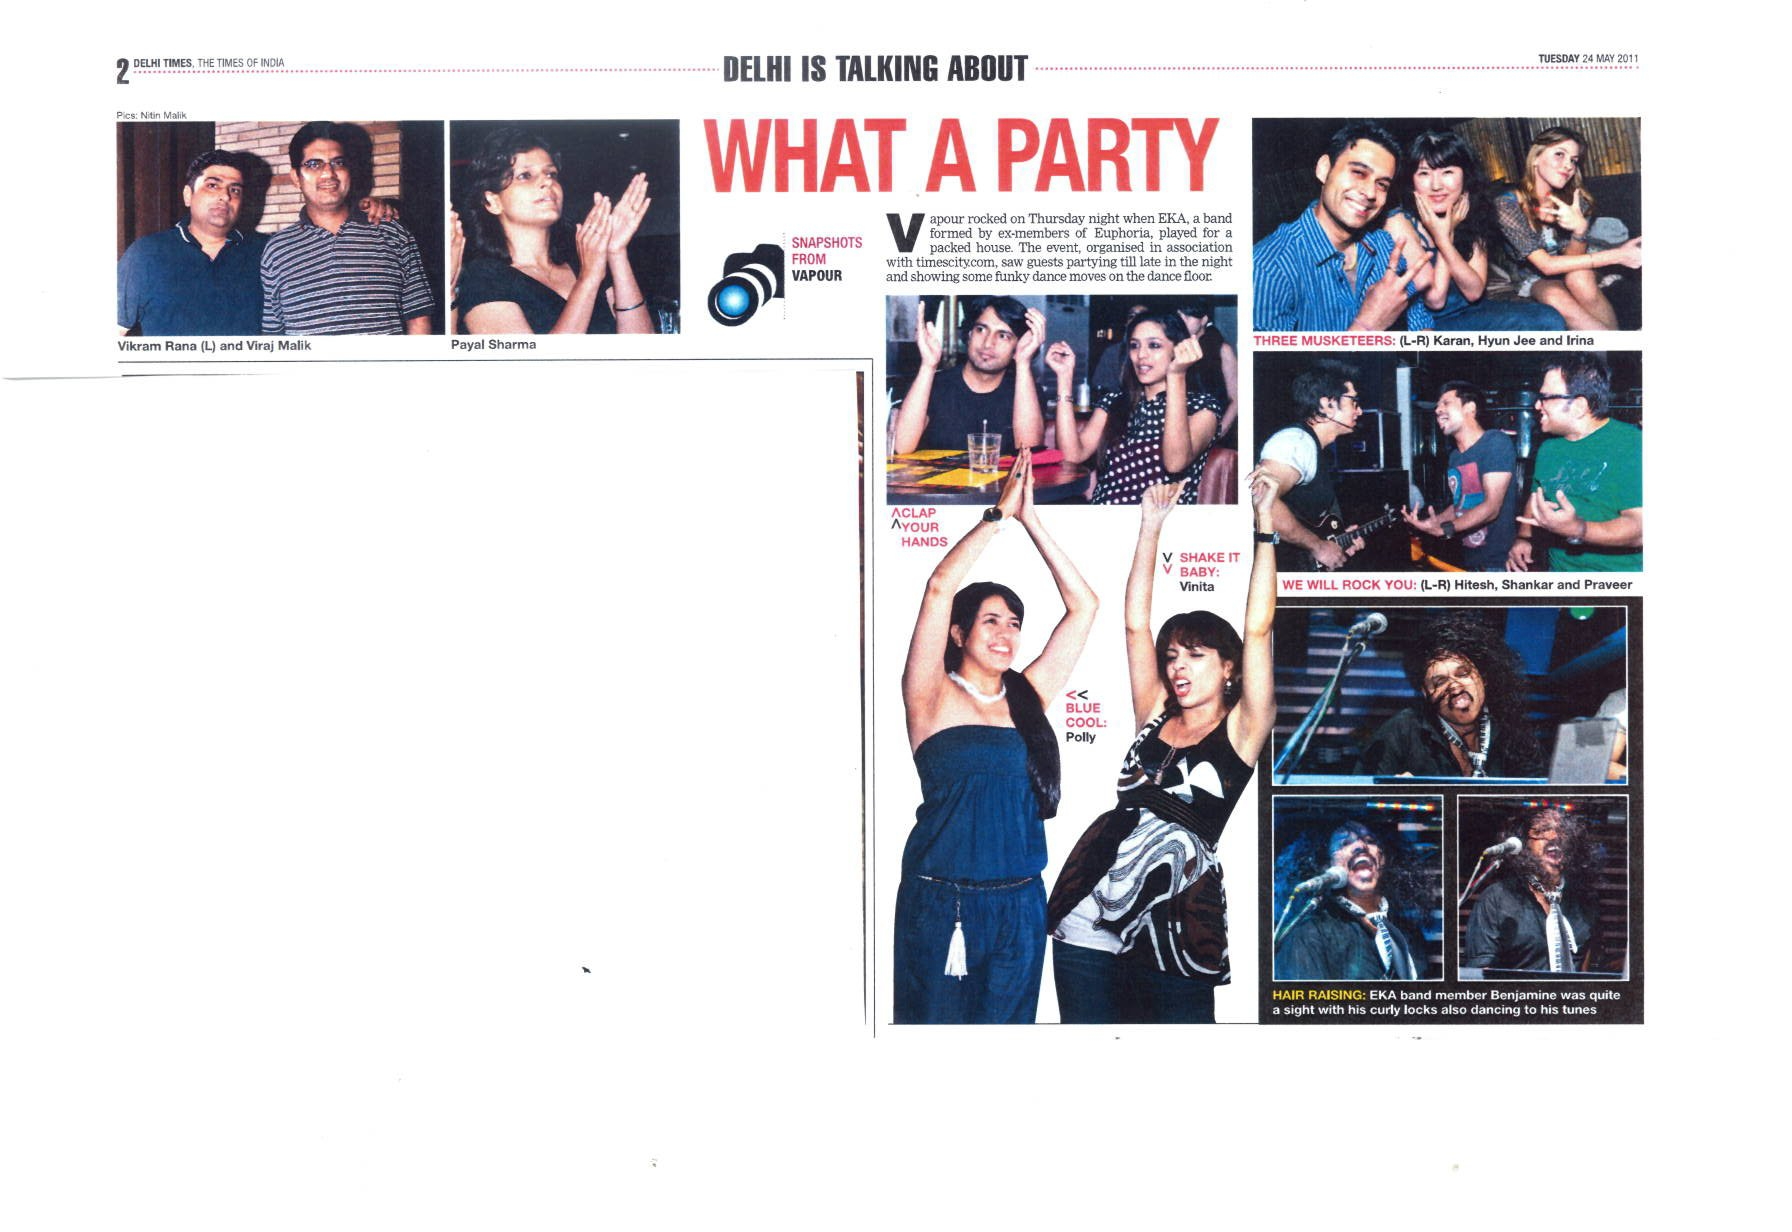 EKA - What a Party – Times of India – Delhi Times 24 May 2011